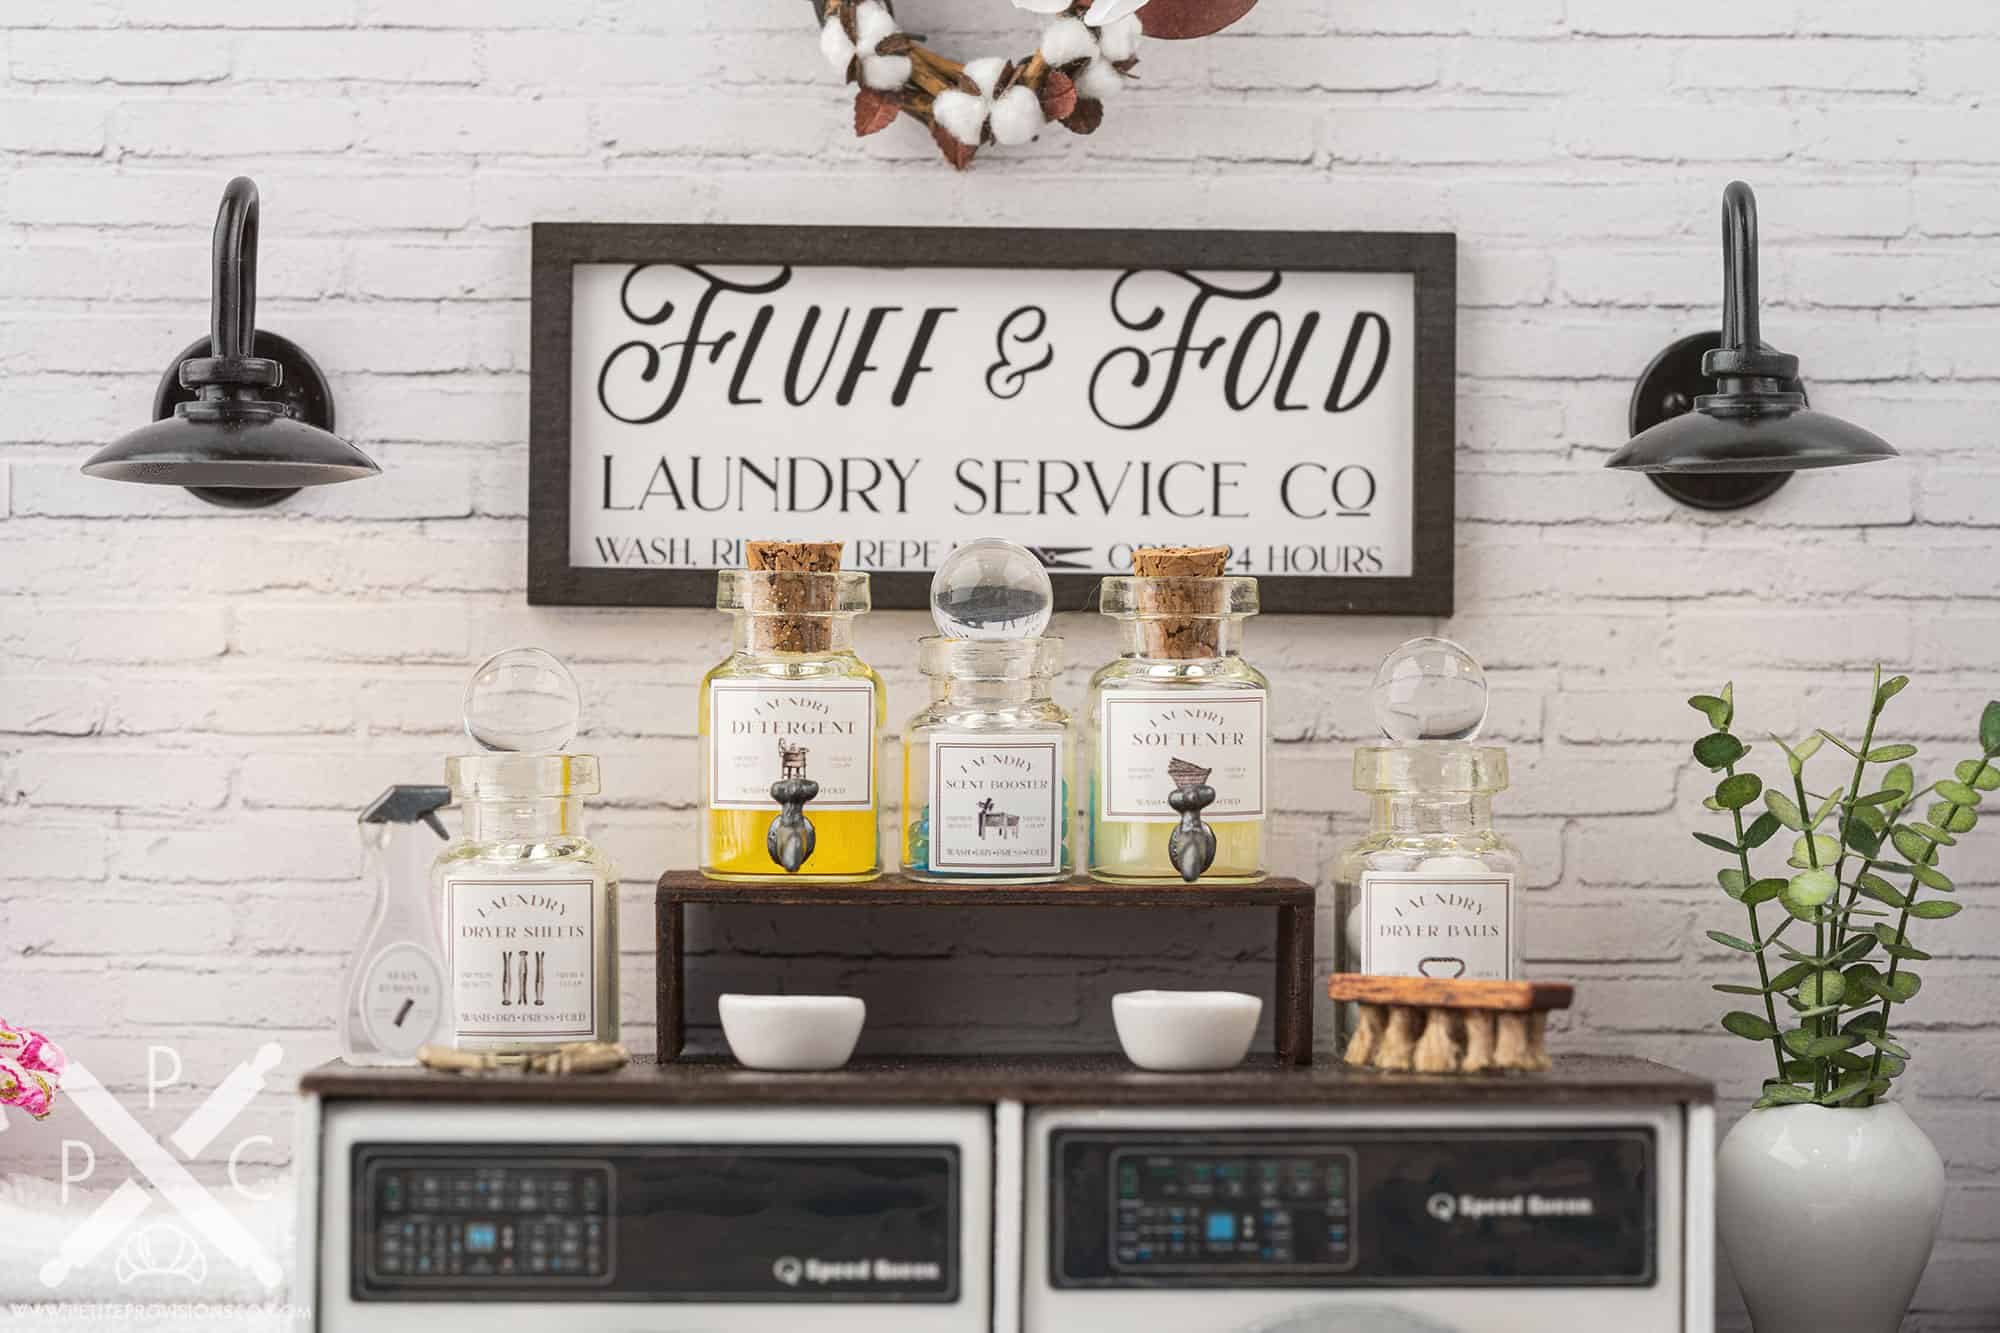 Barn lights and miniature laundry products in a one-inch scale laundry room scene with farmhouse decor